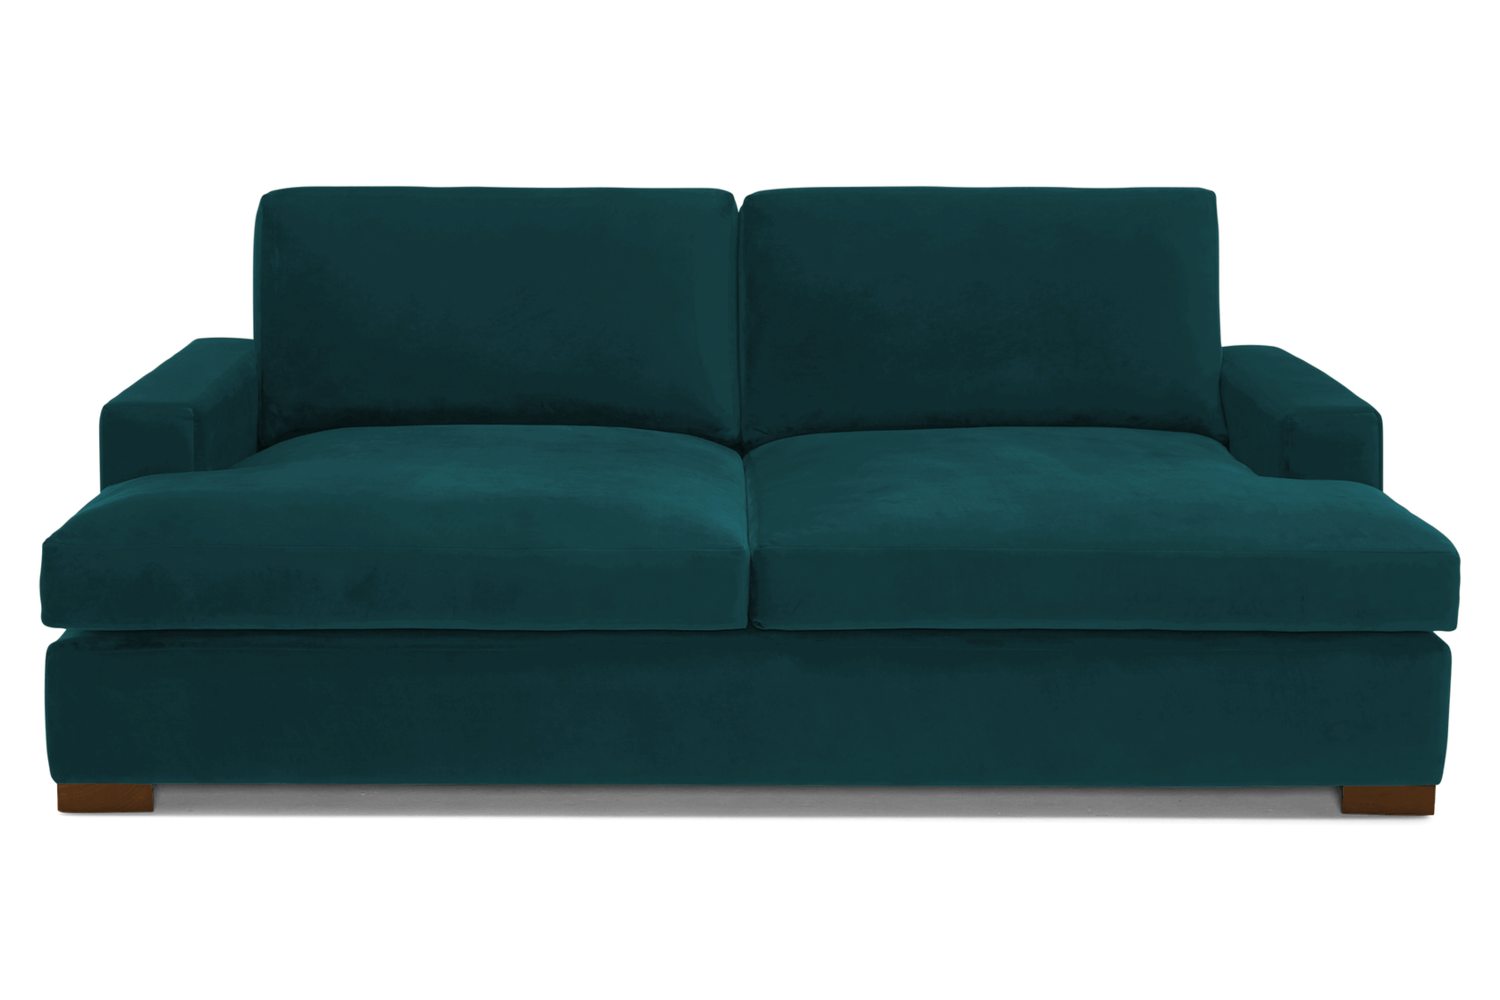 JB Anton Daybed (Royale Peacock) 2970